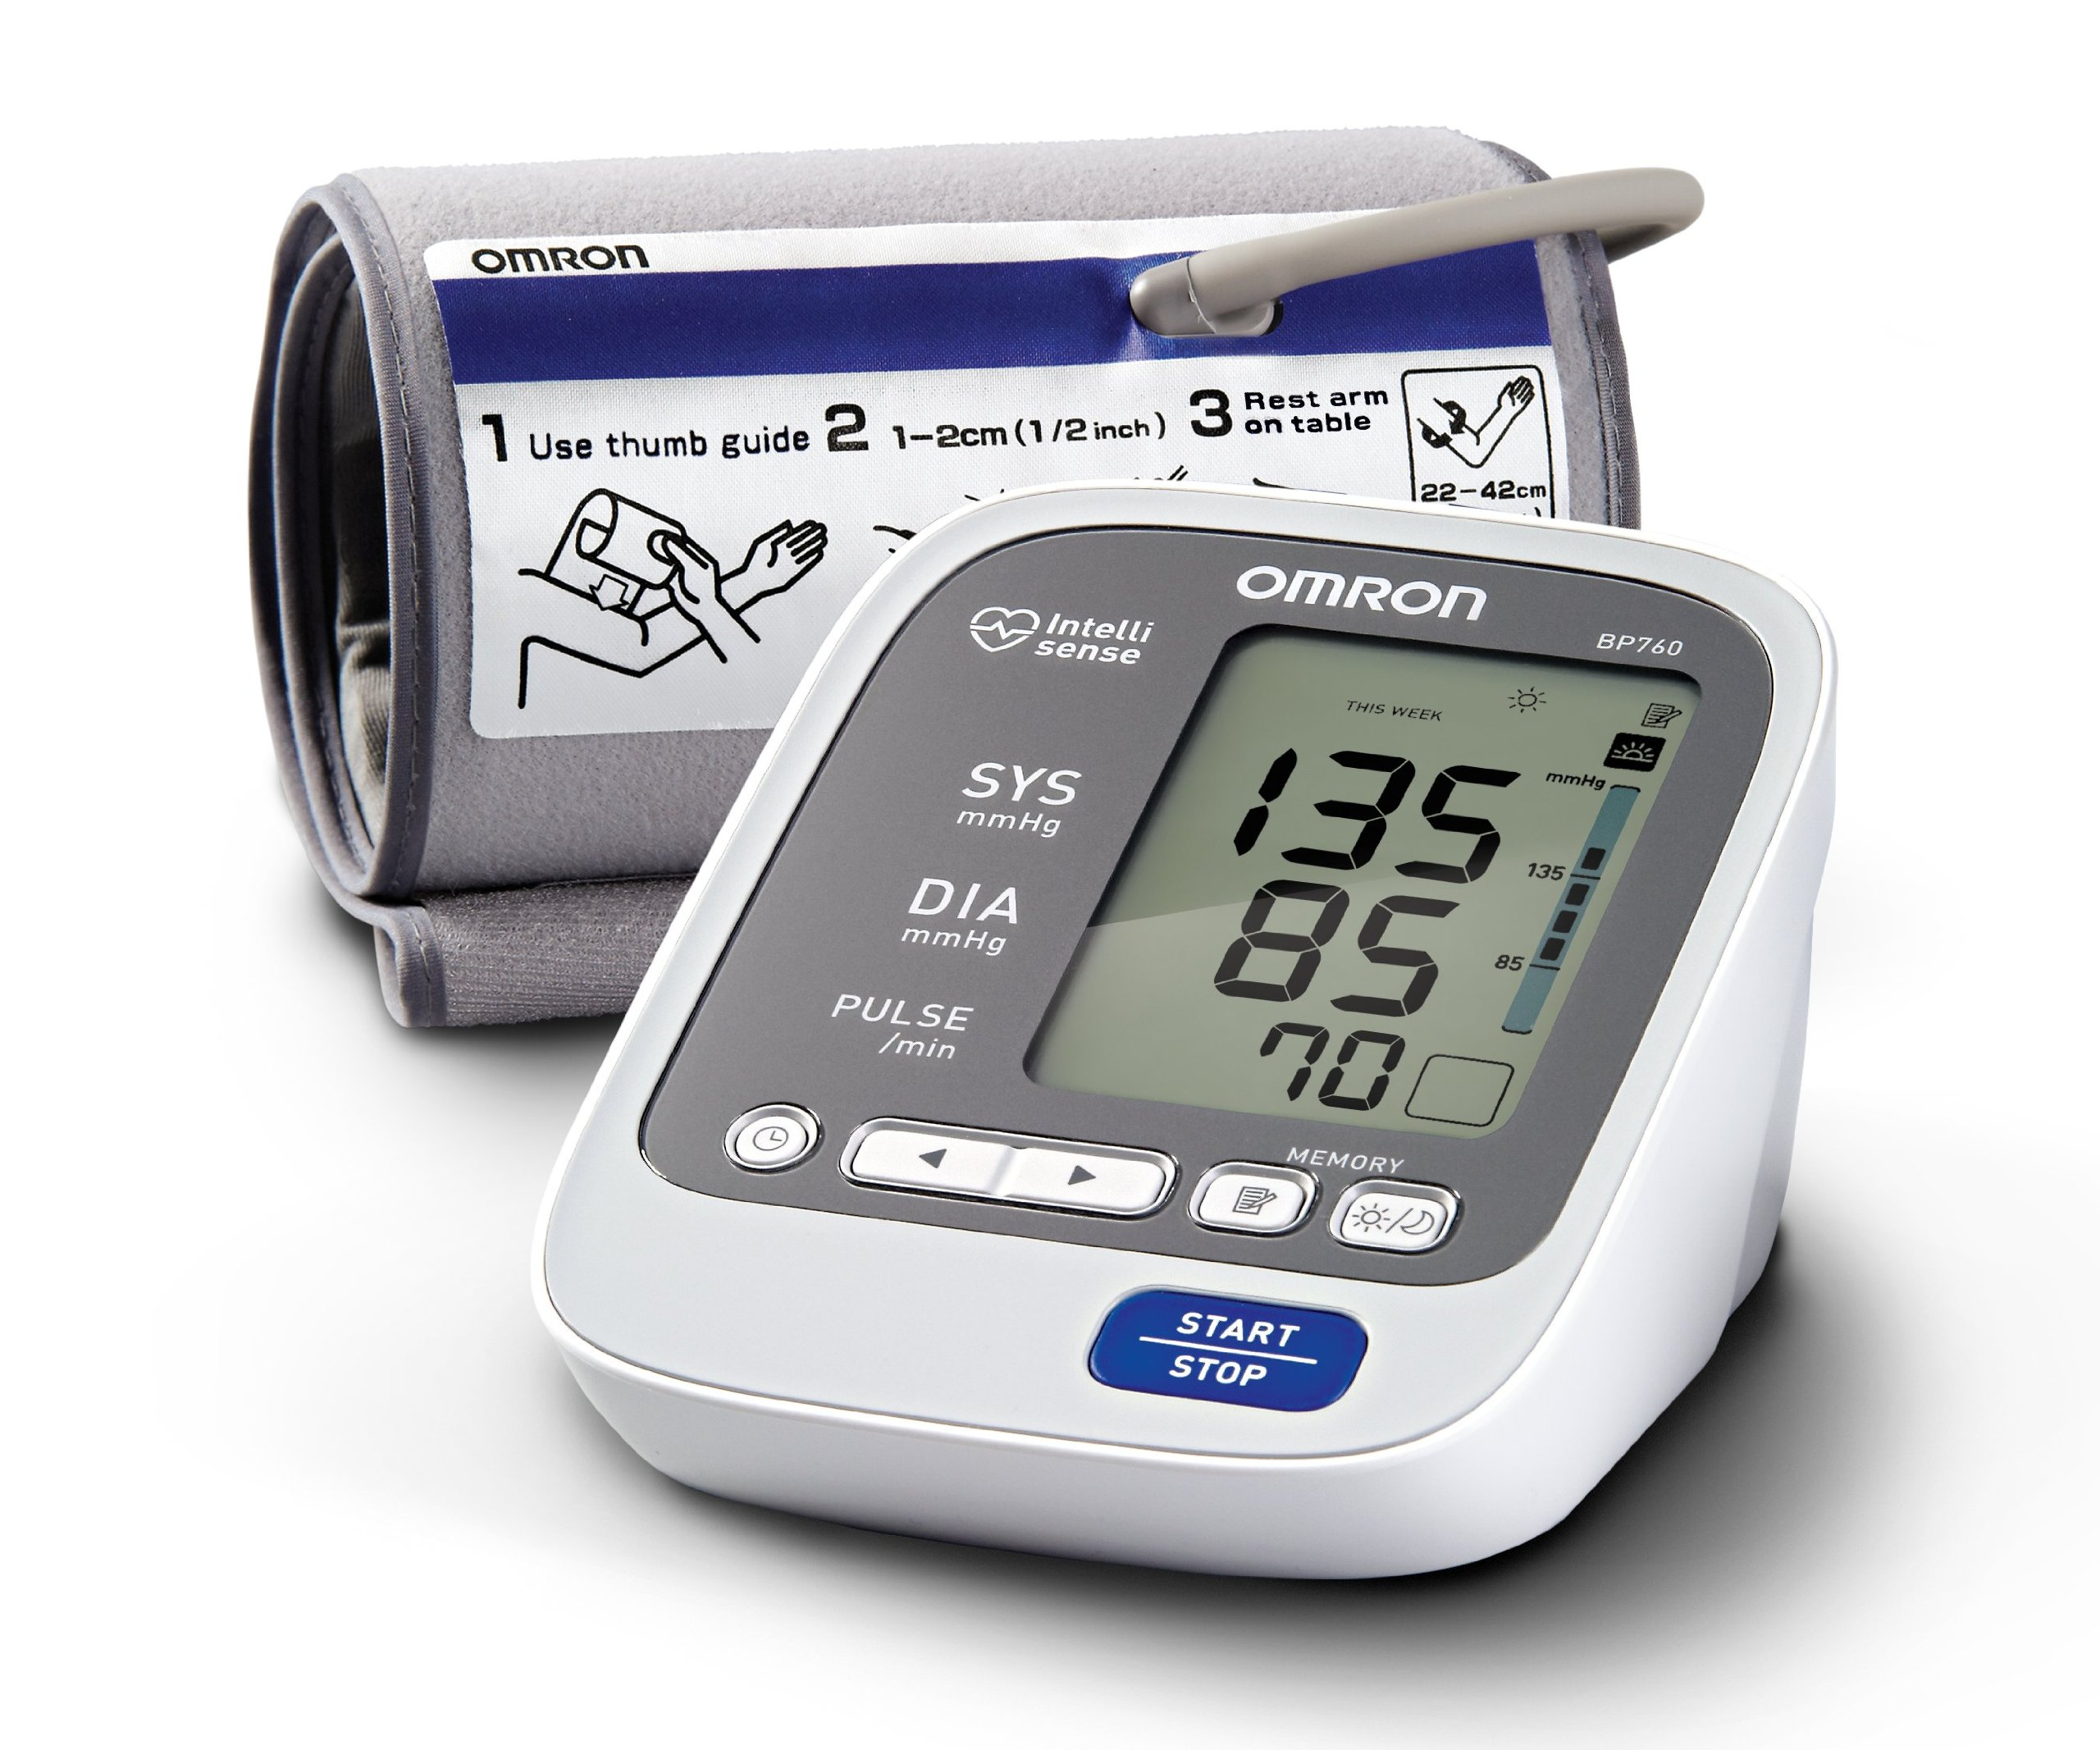 Omron 7 Series Upper Arm Blood Pressure Monitor by Omron (Image #1)